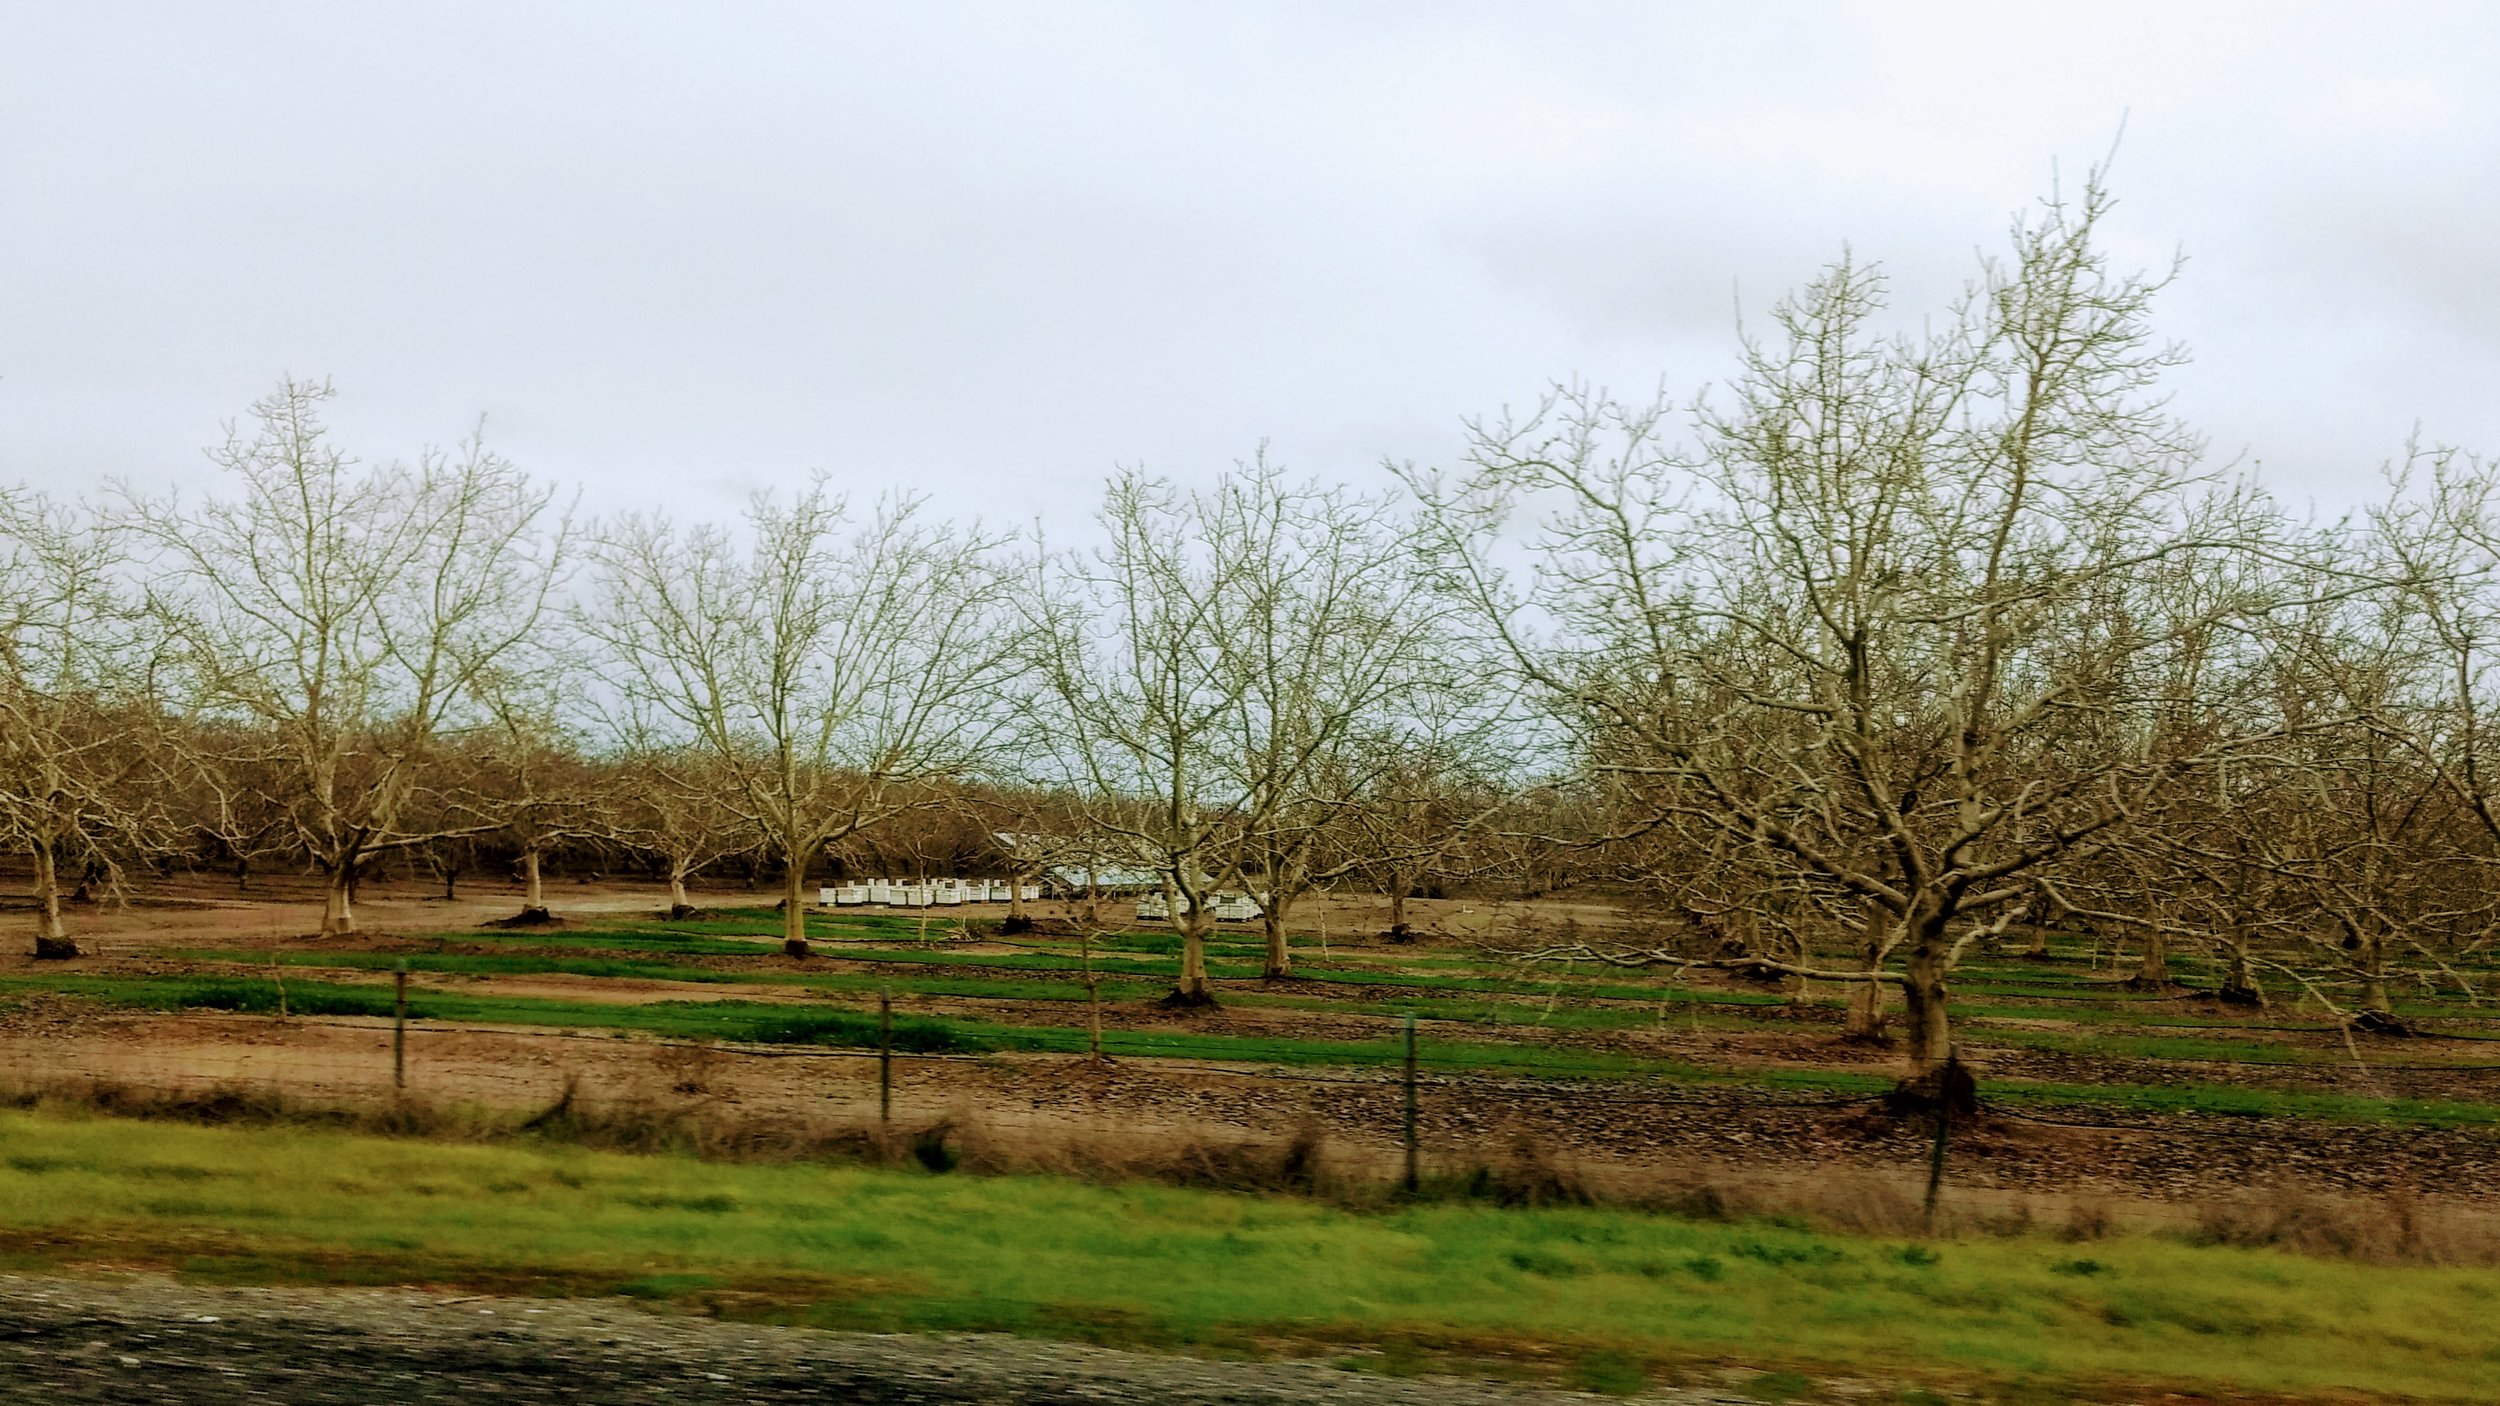 Bee hives moved into the almond fields in California's Central Valley